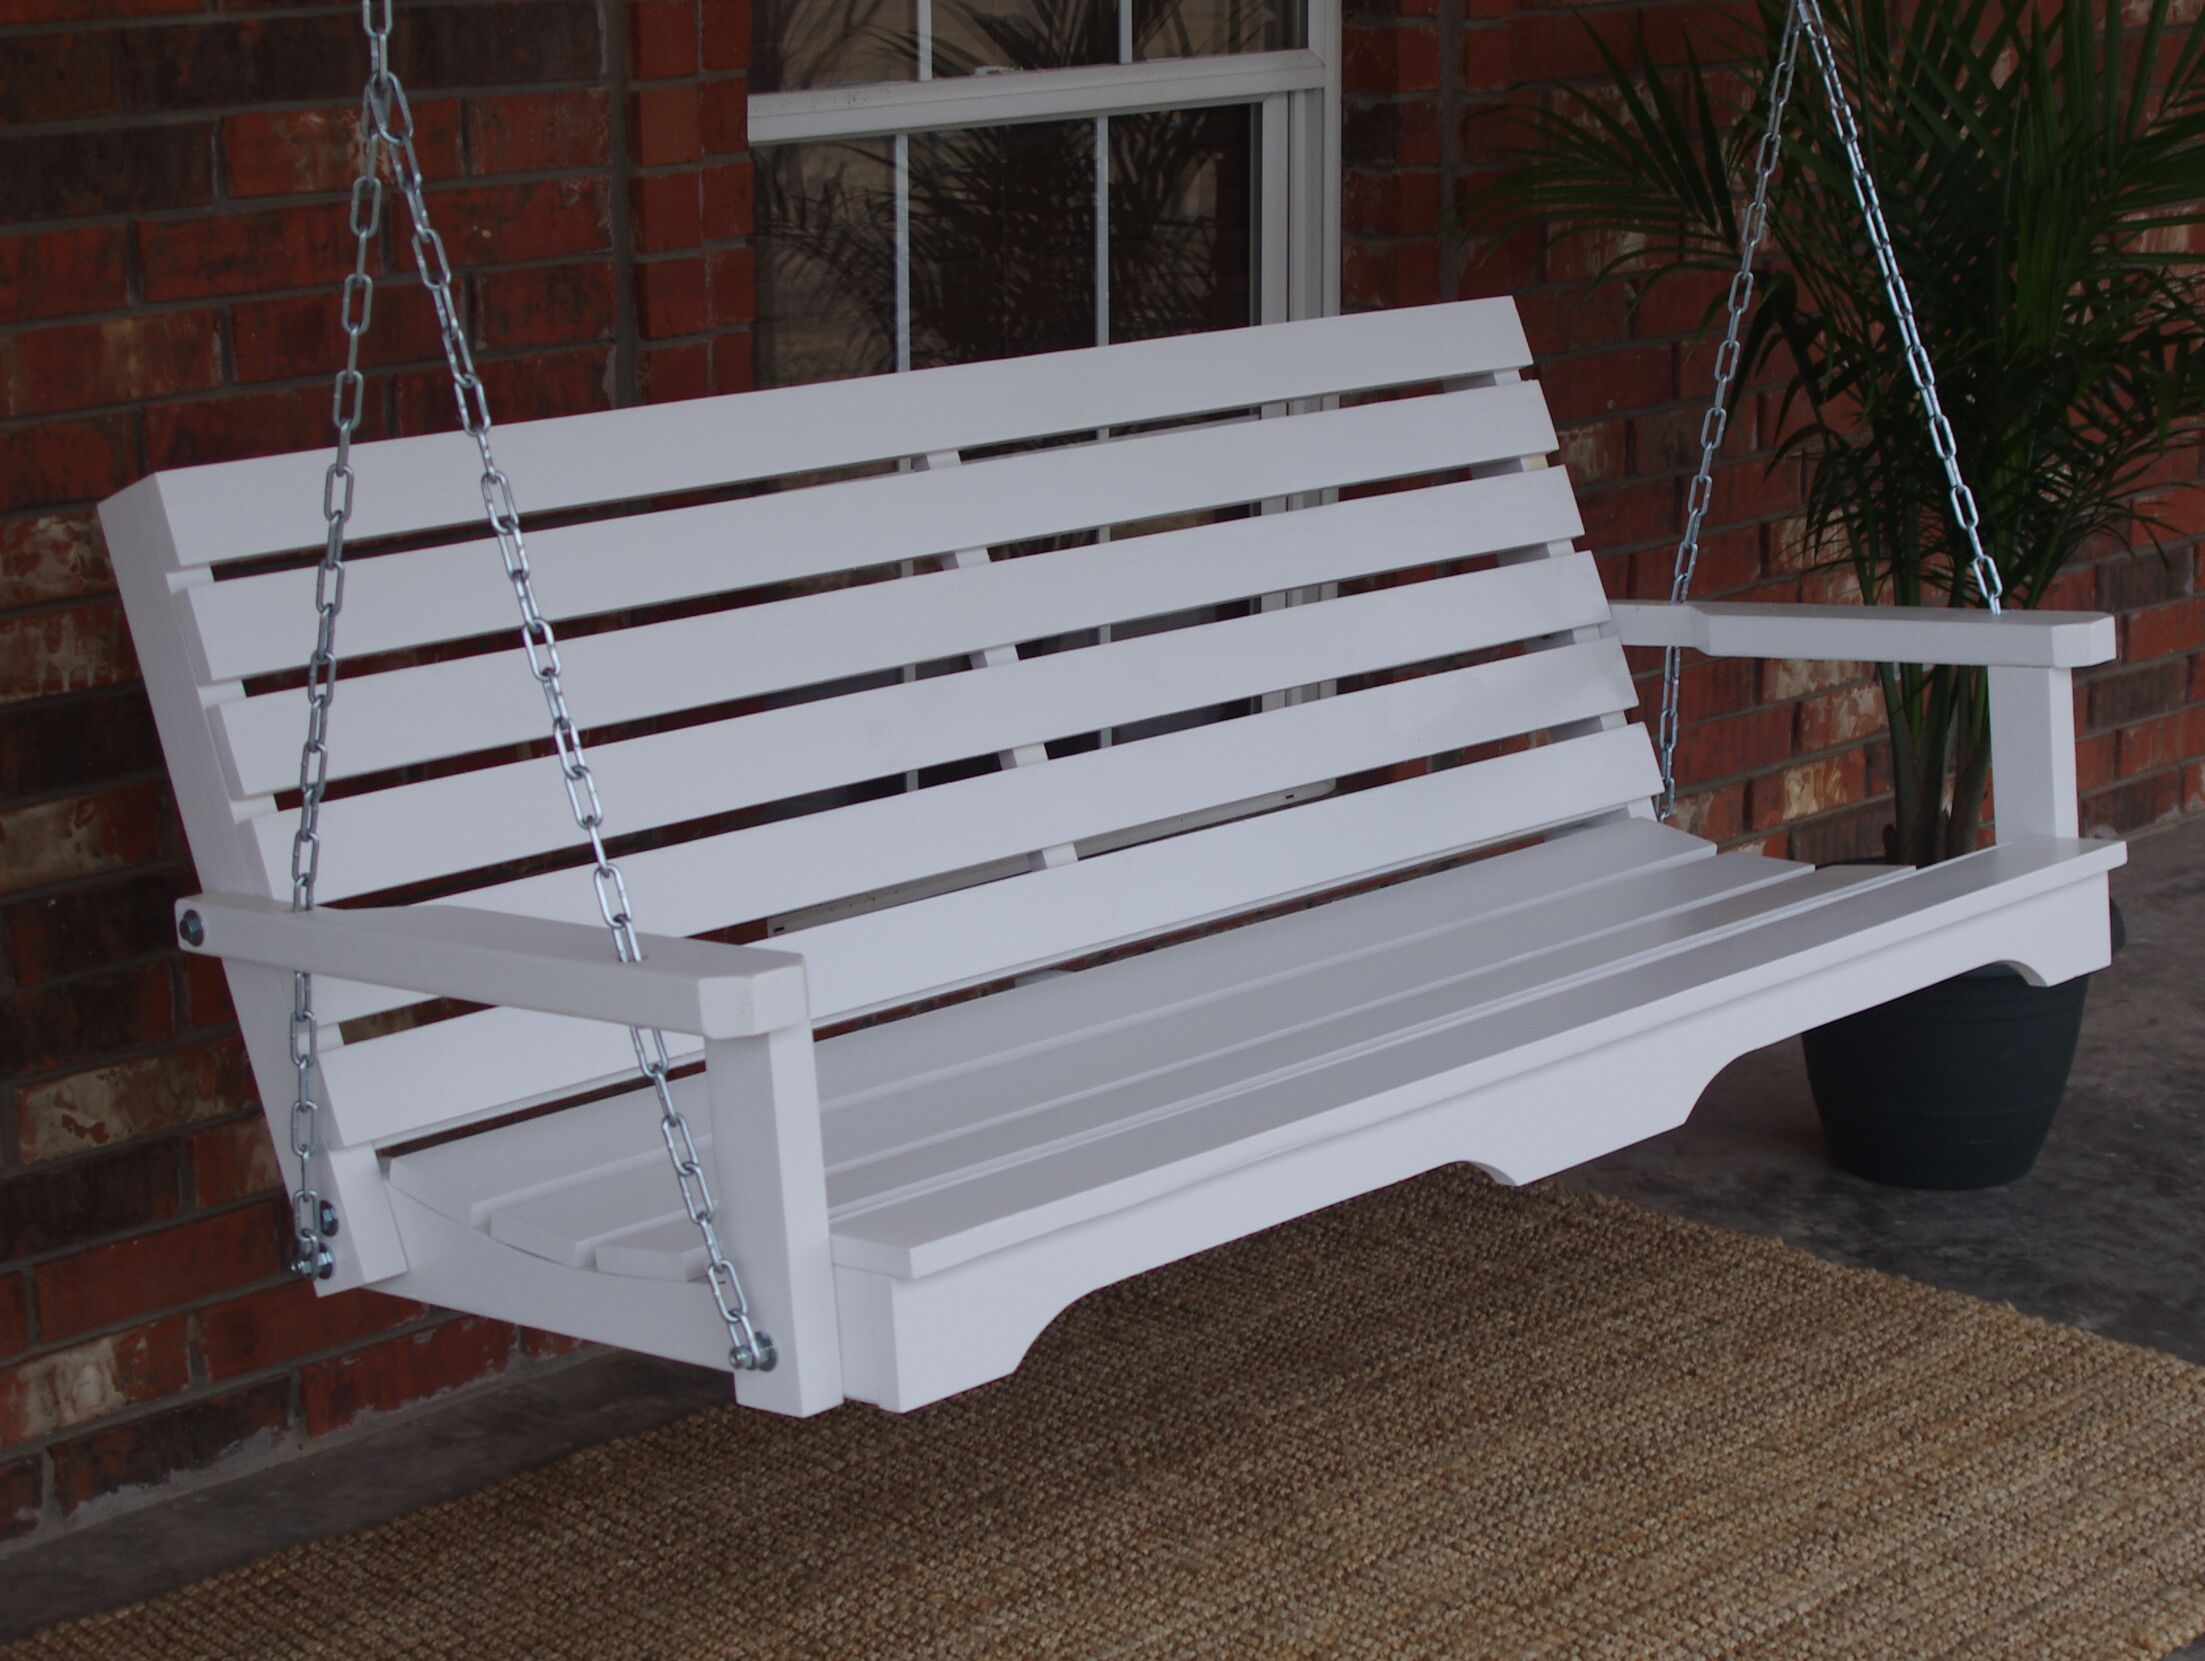 Bisantz Country Style Porch Swing Finish: Zinc Plated/Galvanized, Size: 24.5